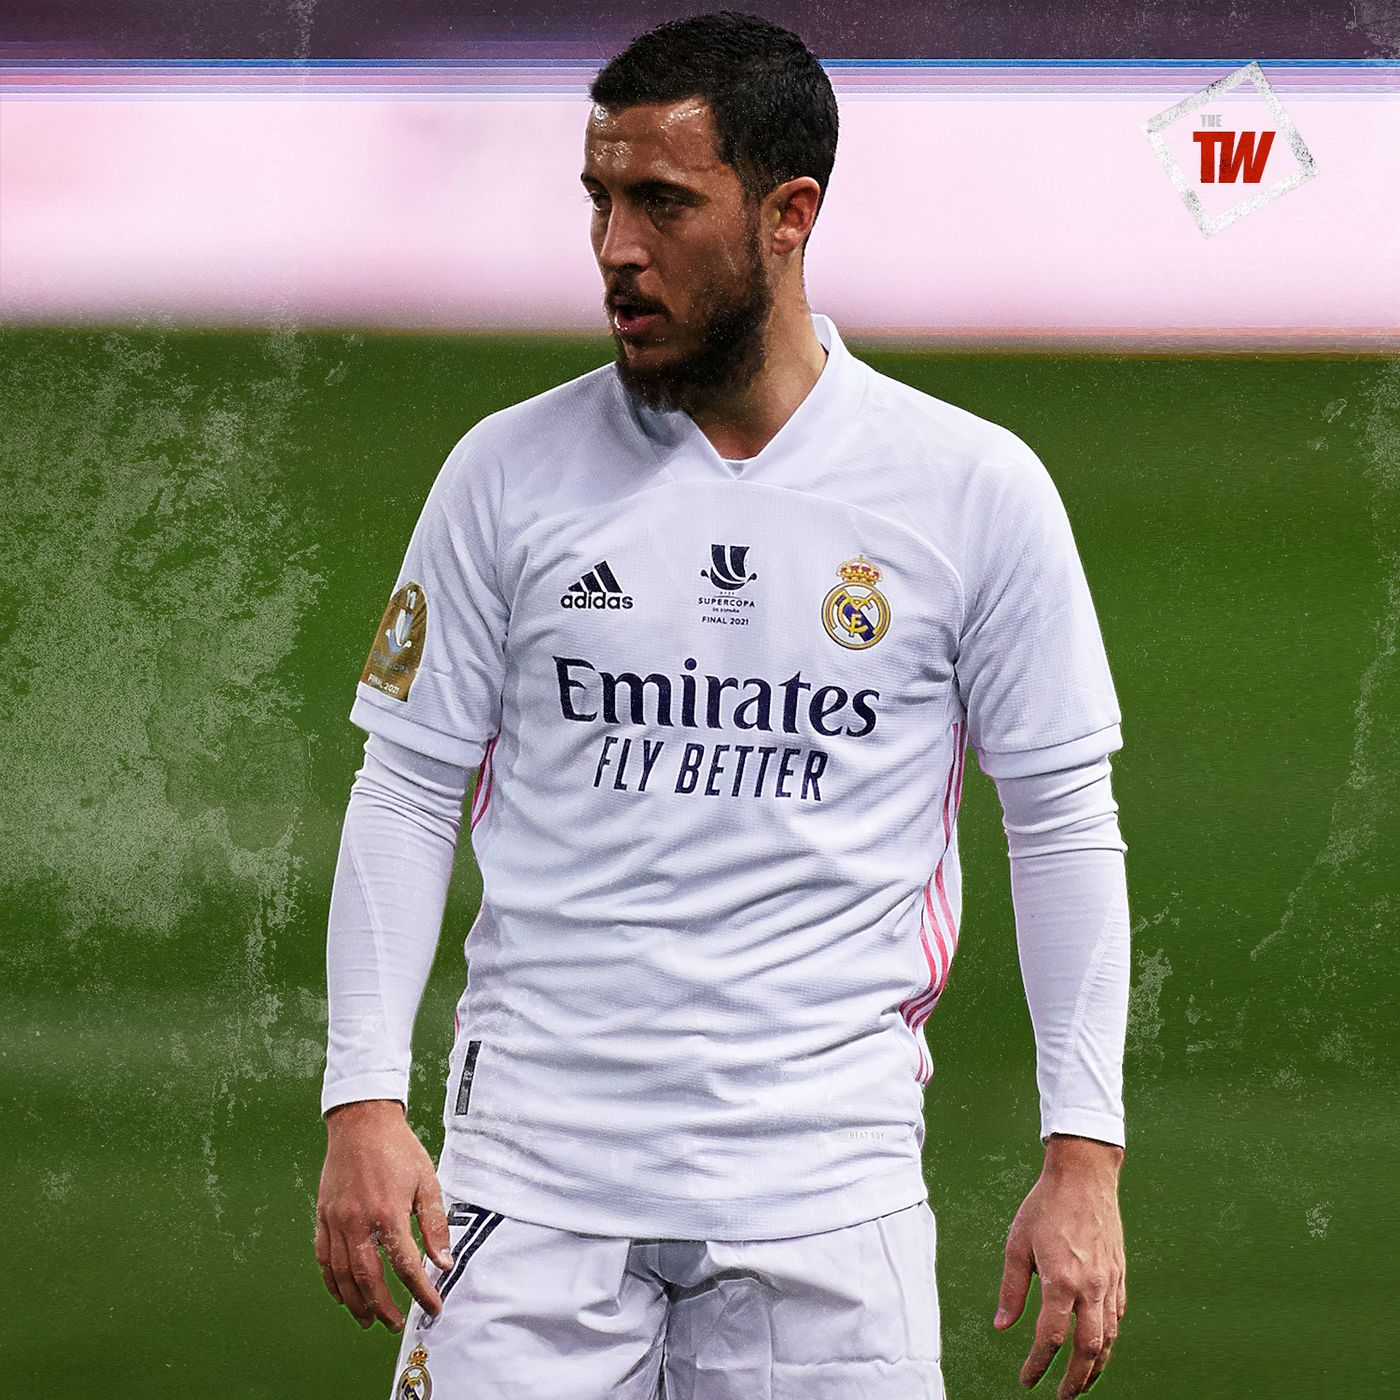 Madrid consider using Hazard to land Mbappe | Bale fails again | Man Utd's Anfield opportunity